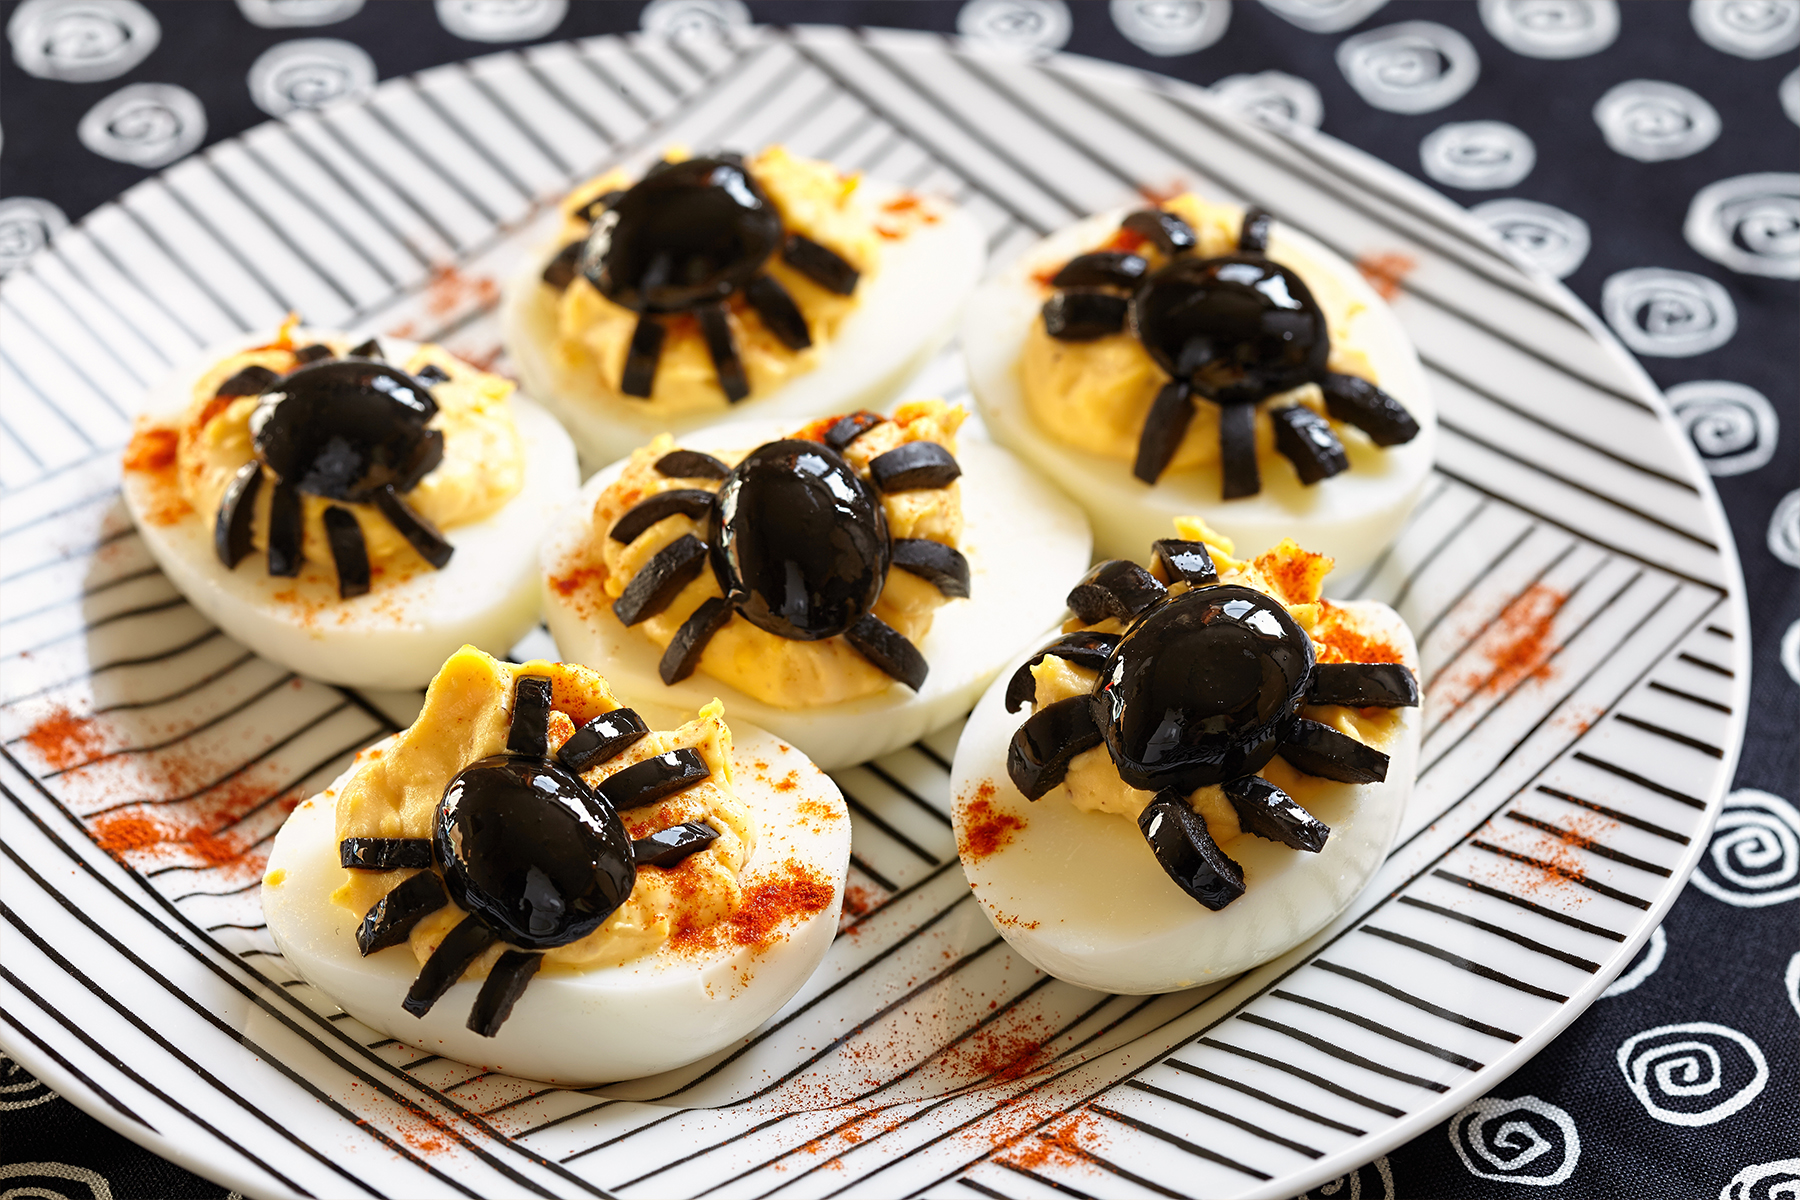 Devilled eggs with olive spiders